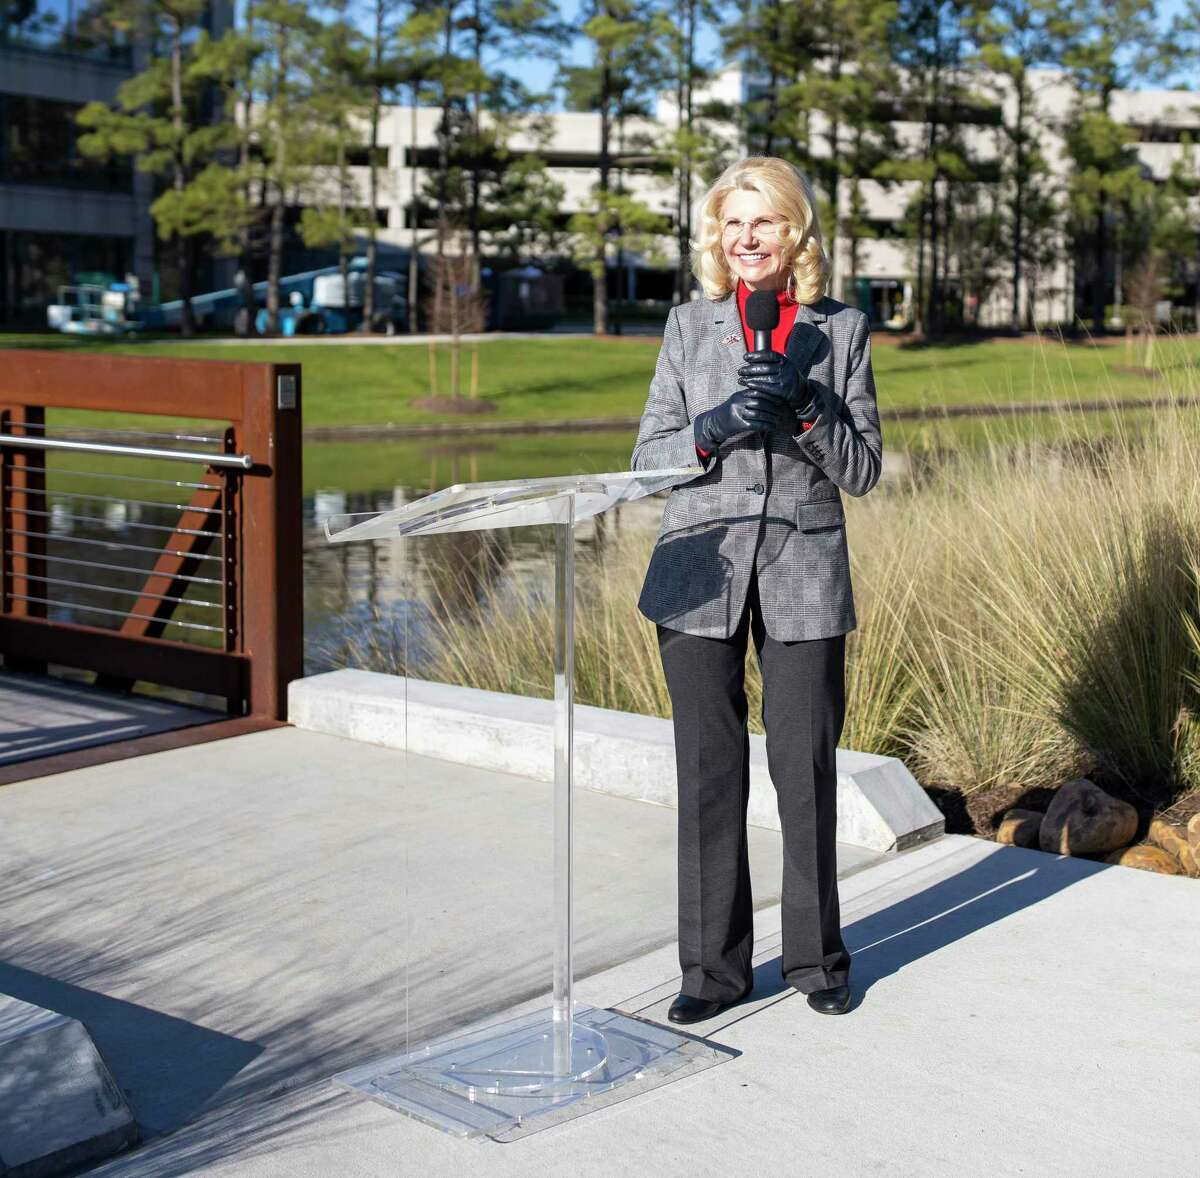 Dr. Shelley Sekula-Gibbs speaks during the ribbon cutting of the new pedestrian bridge located at Lake Front North in Hughes Landing was revealed on Friday, Jan. 24, 2020. Sekula-Gibbs announced she will seek re-election in the Nov. 2 township election.